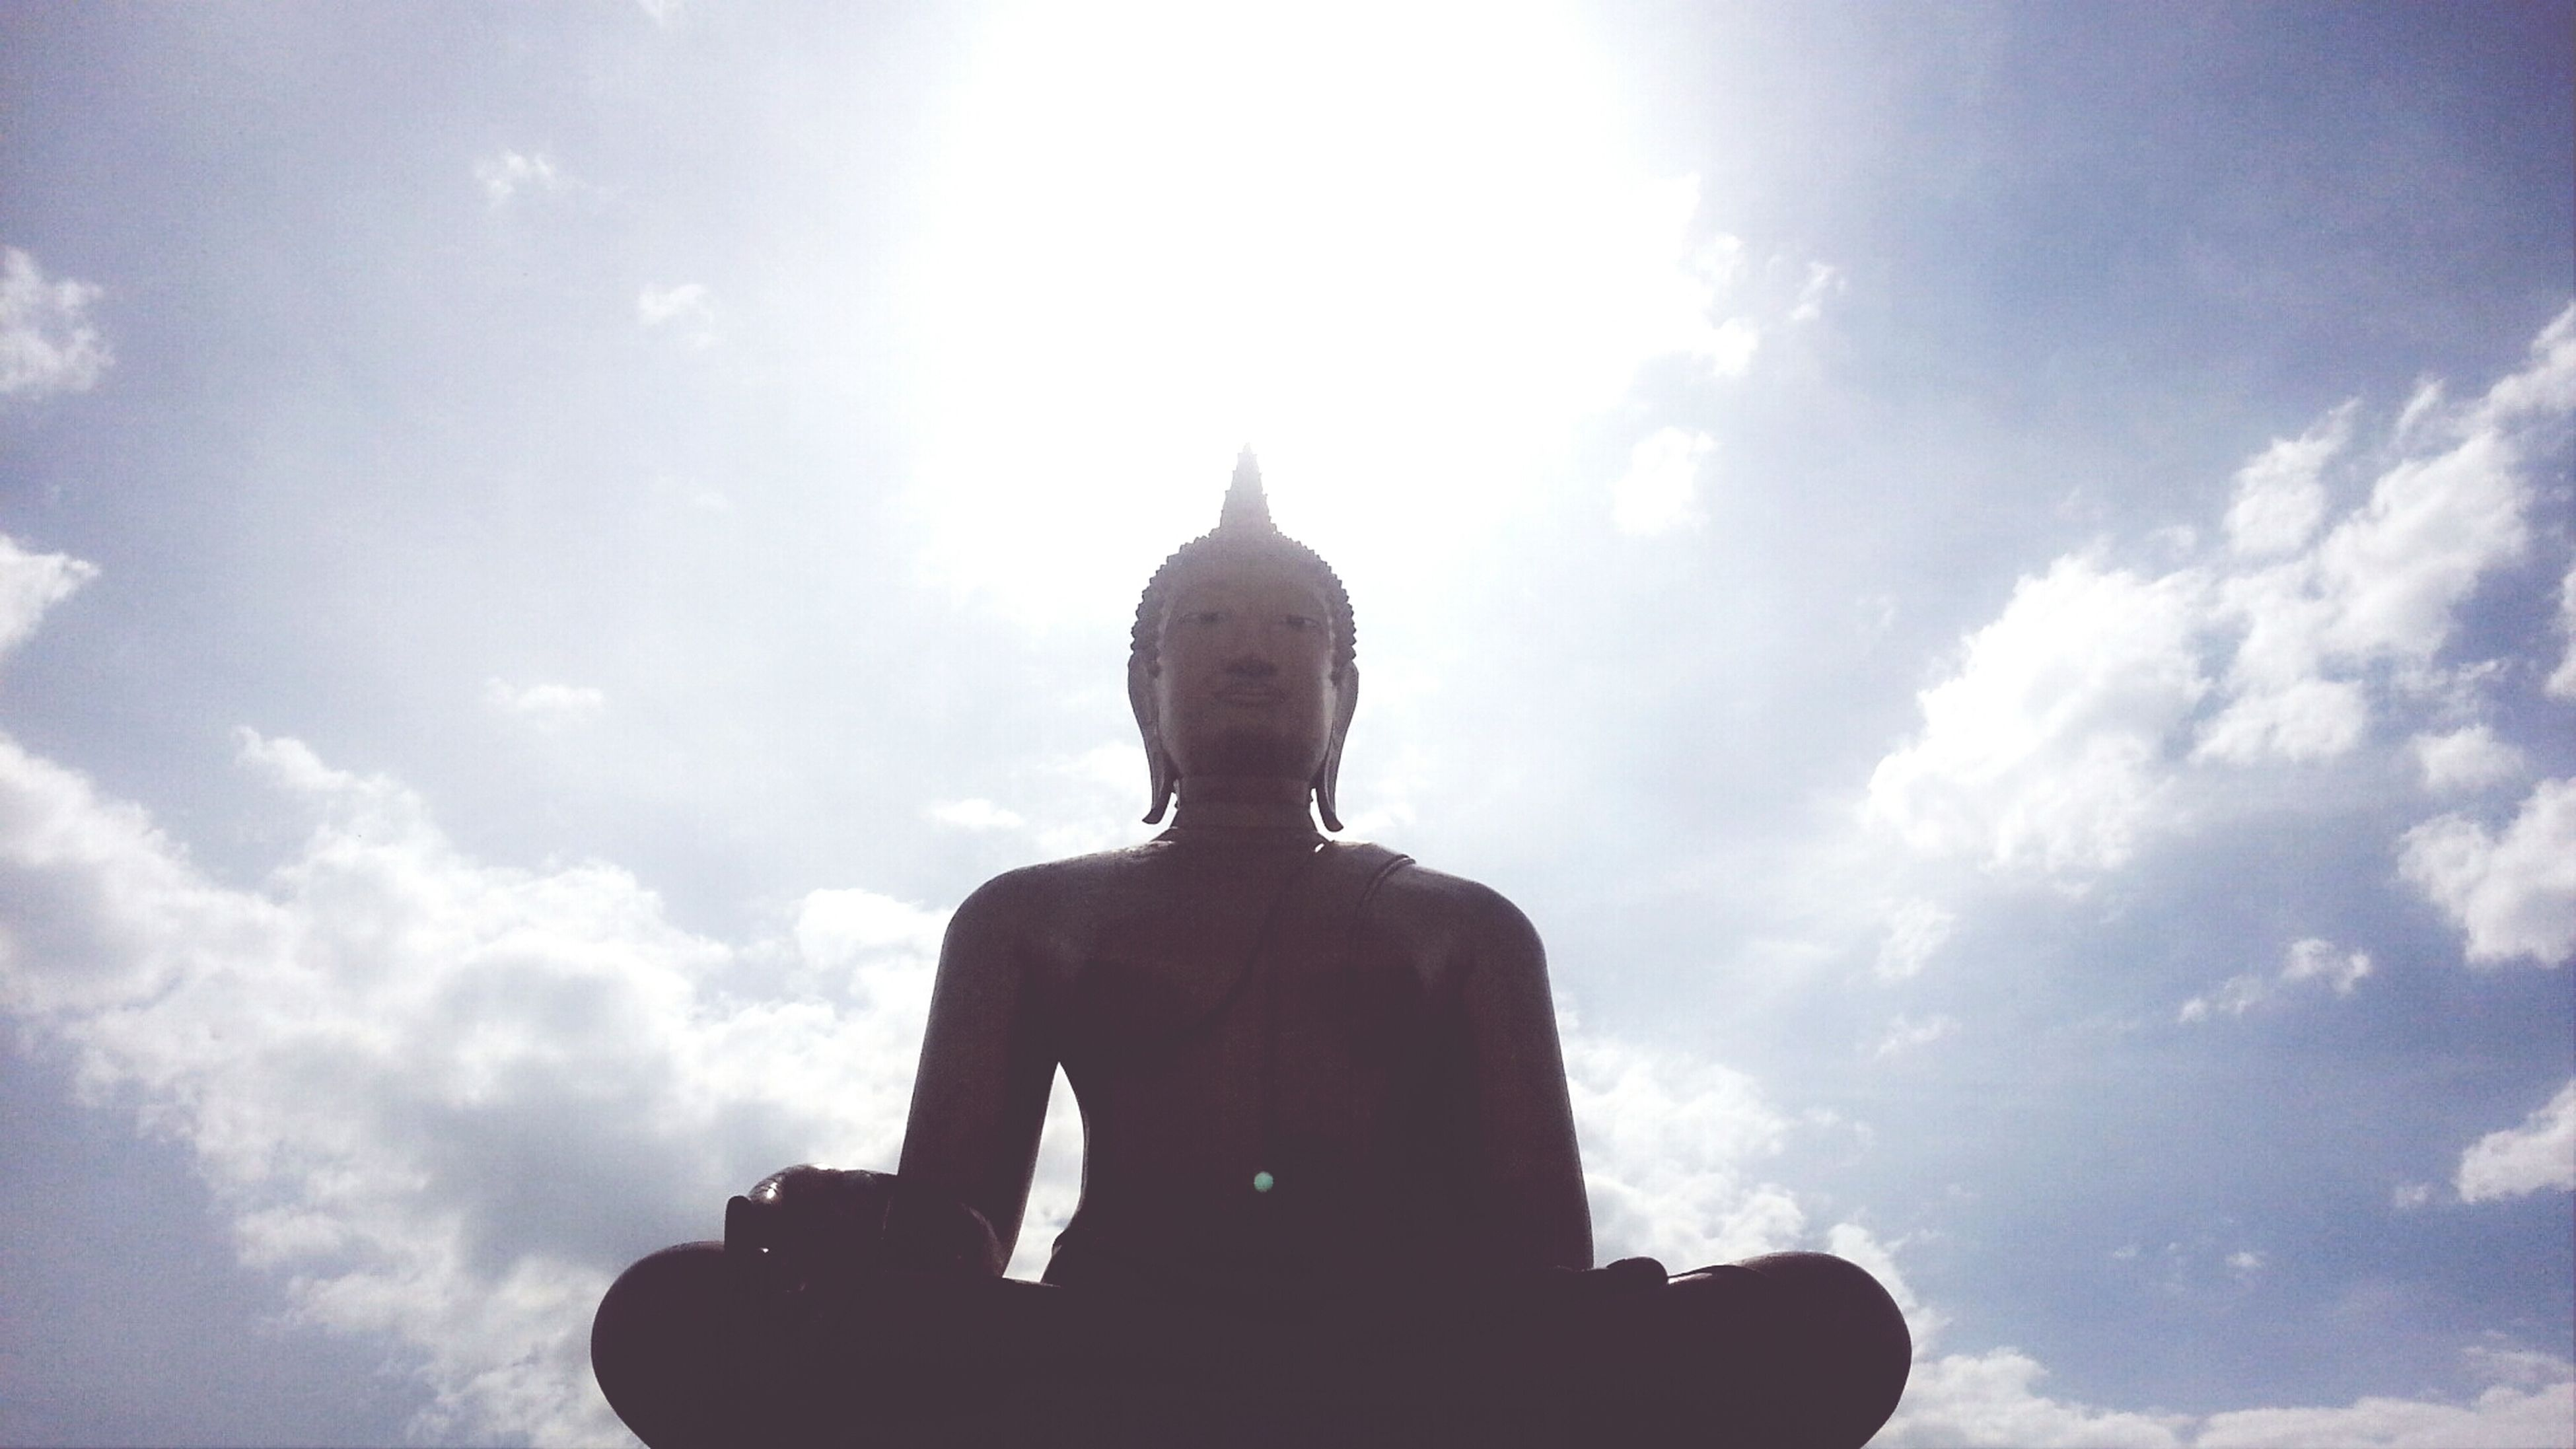 human representation, statue, low angle view, sky, sculpture, religion, art and craft, silhouette, spirituality, art, cloud - sky, creativity, place of worship, cloud, cloudy, built structure